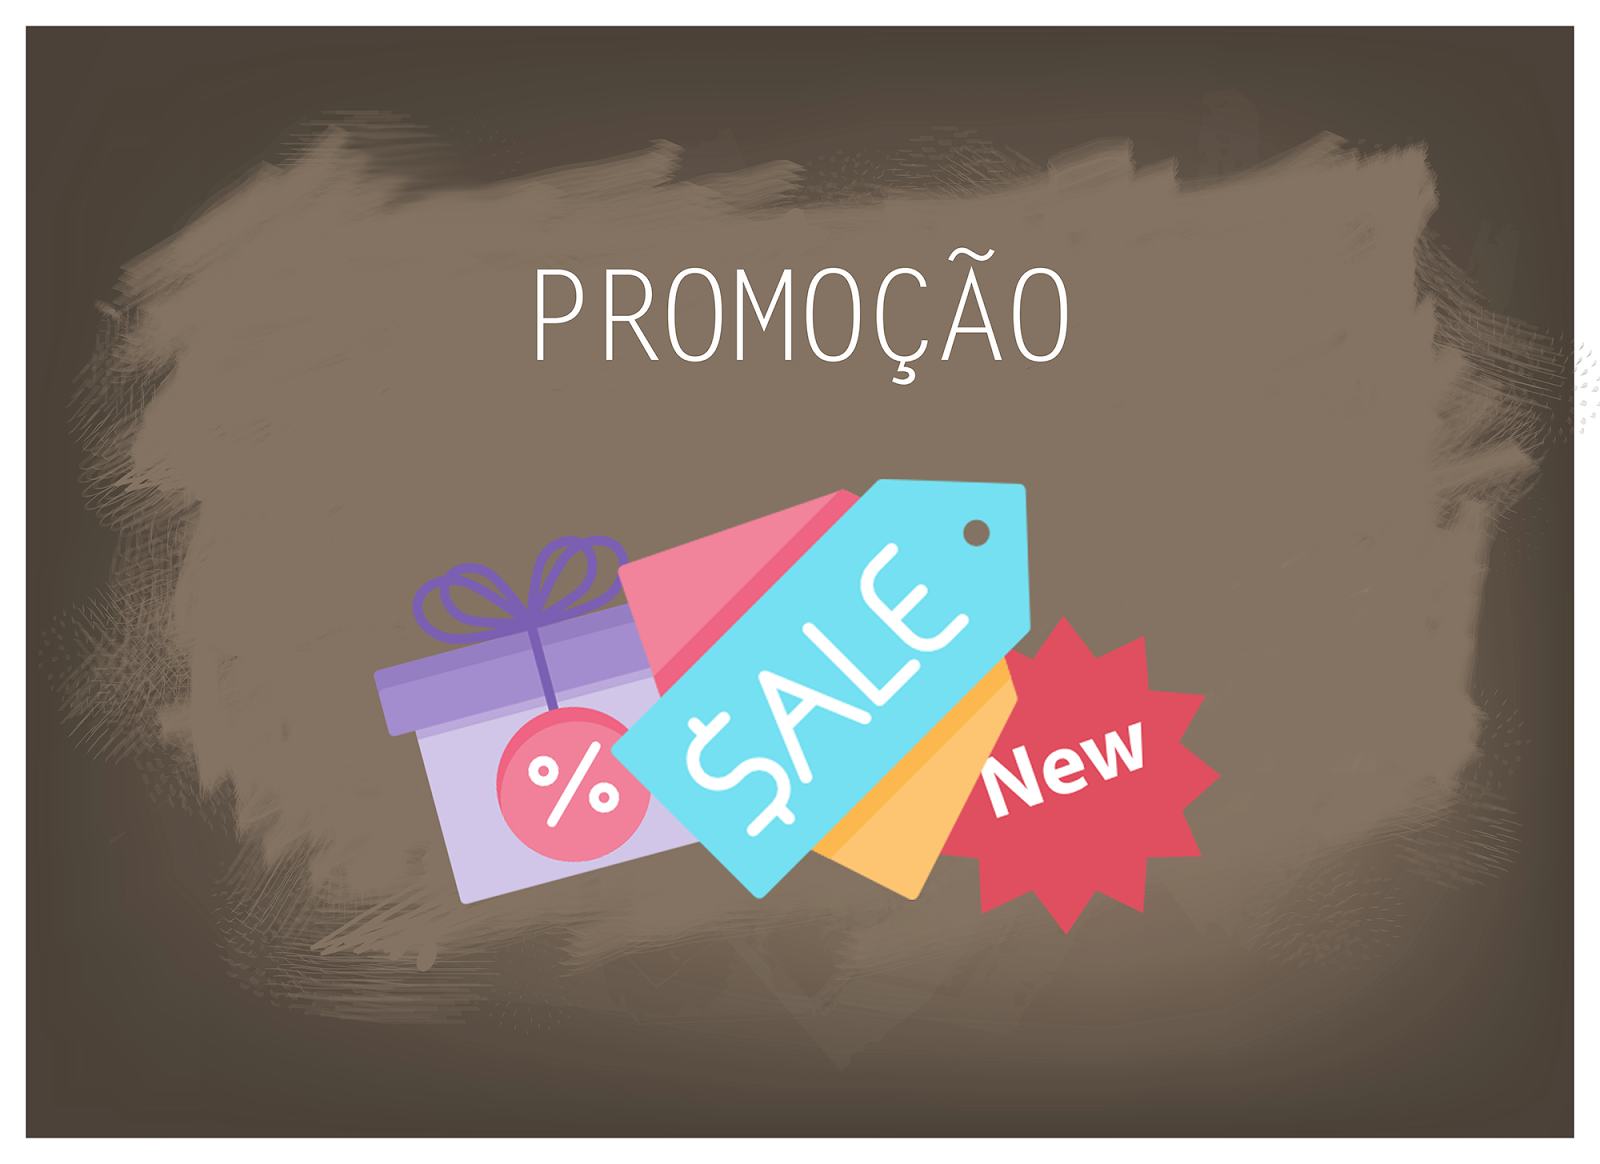 4ps do Marketing - Promoção